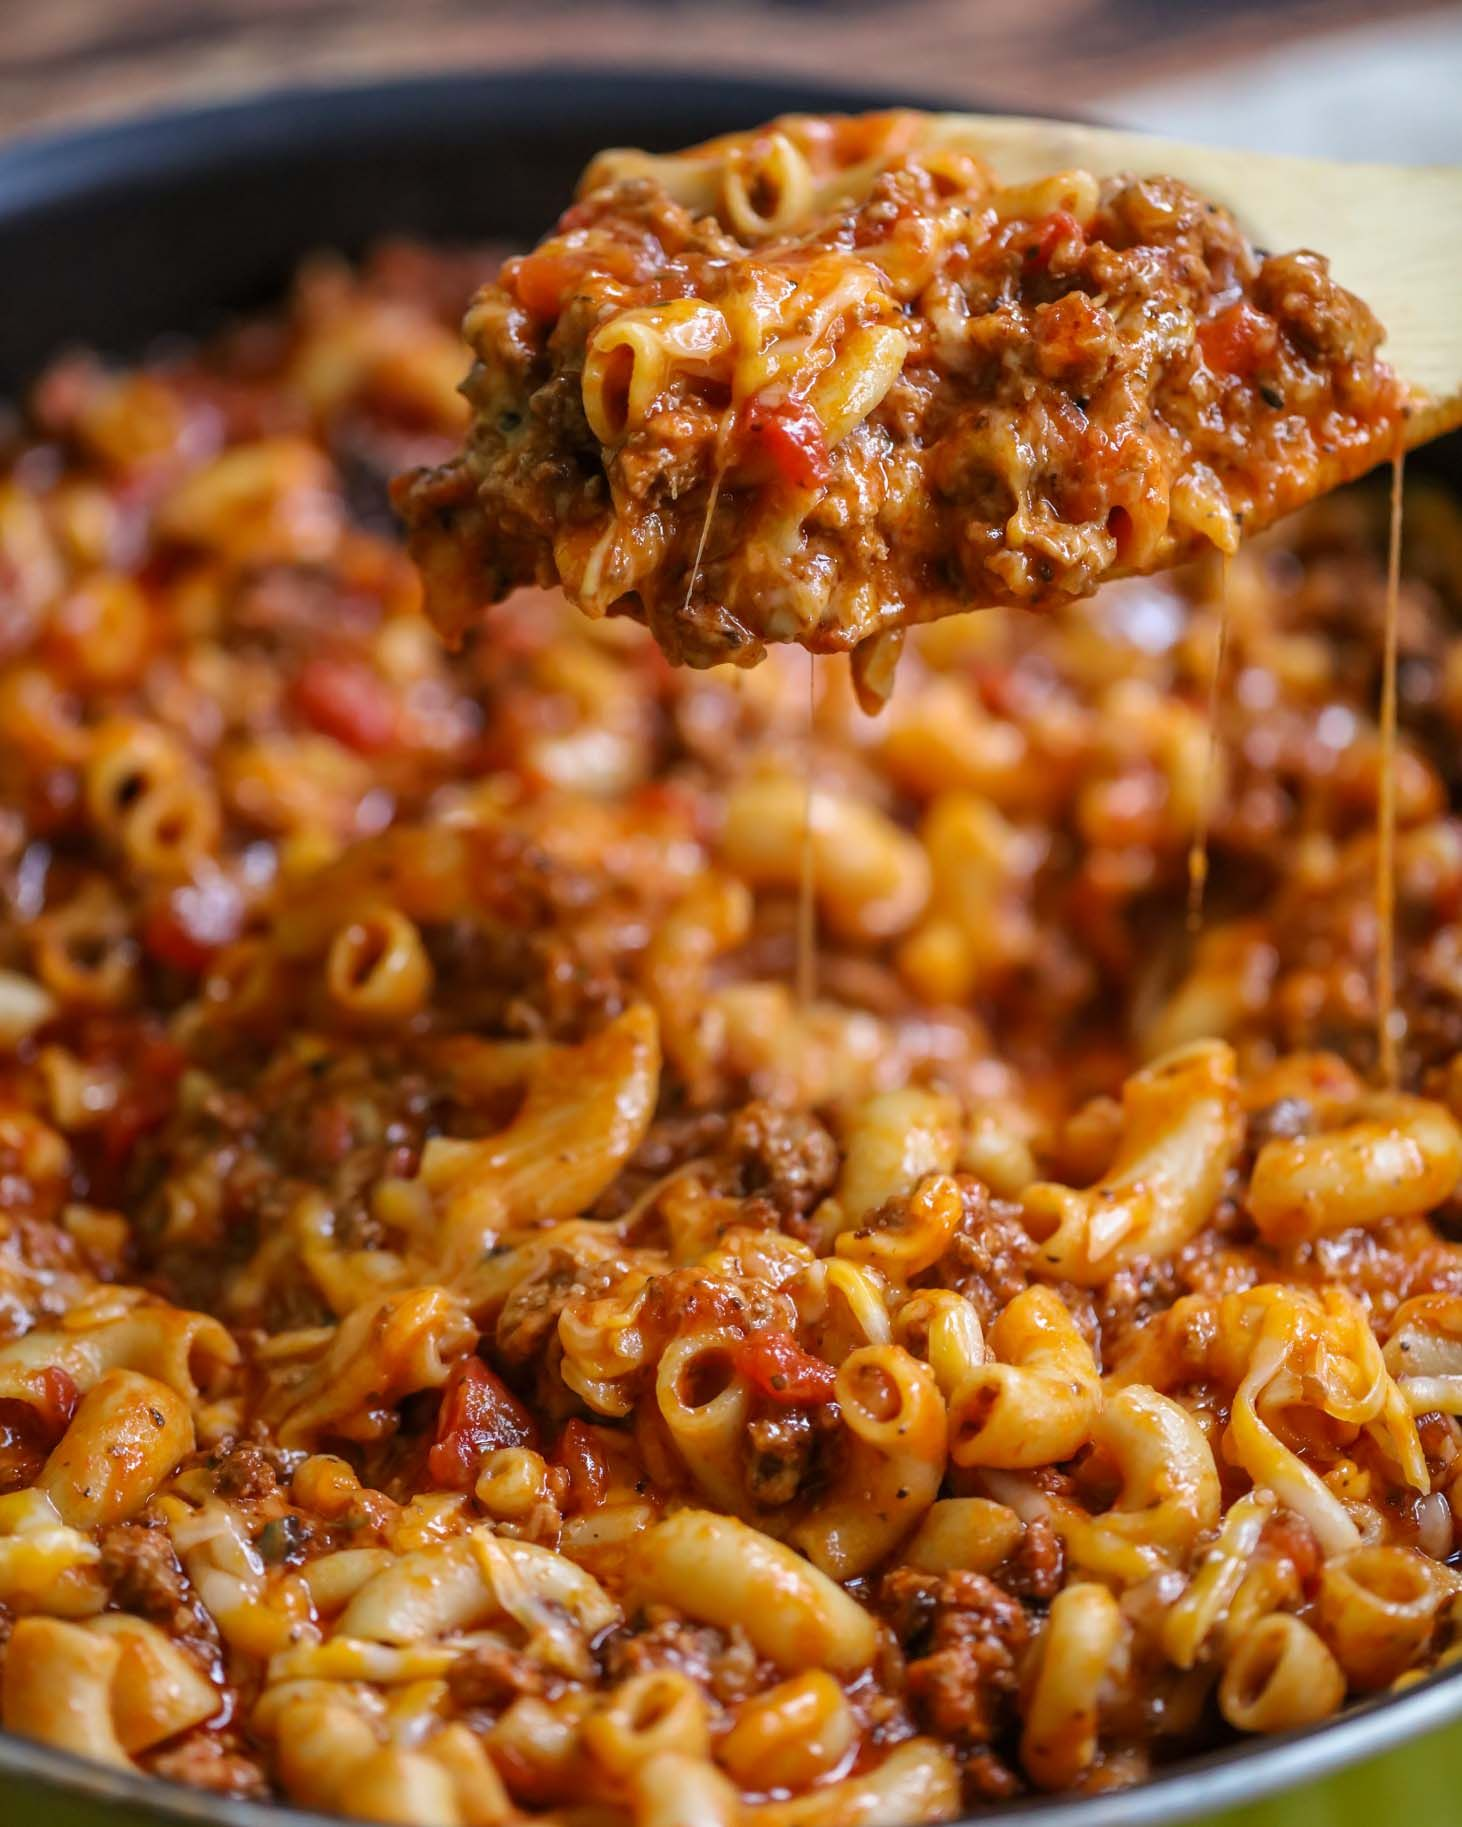 70 Drool Worthy Ground Beef Recipes That Will Make You: Goulash Recipes, Recipes, Goulash